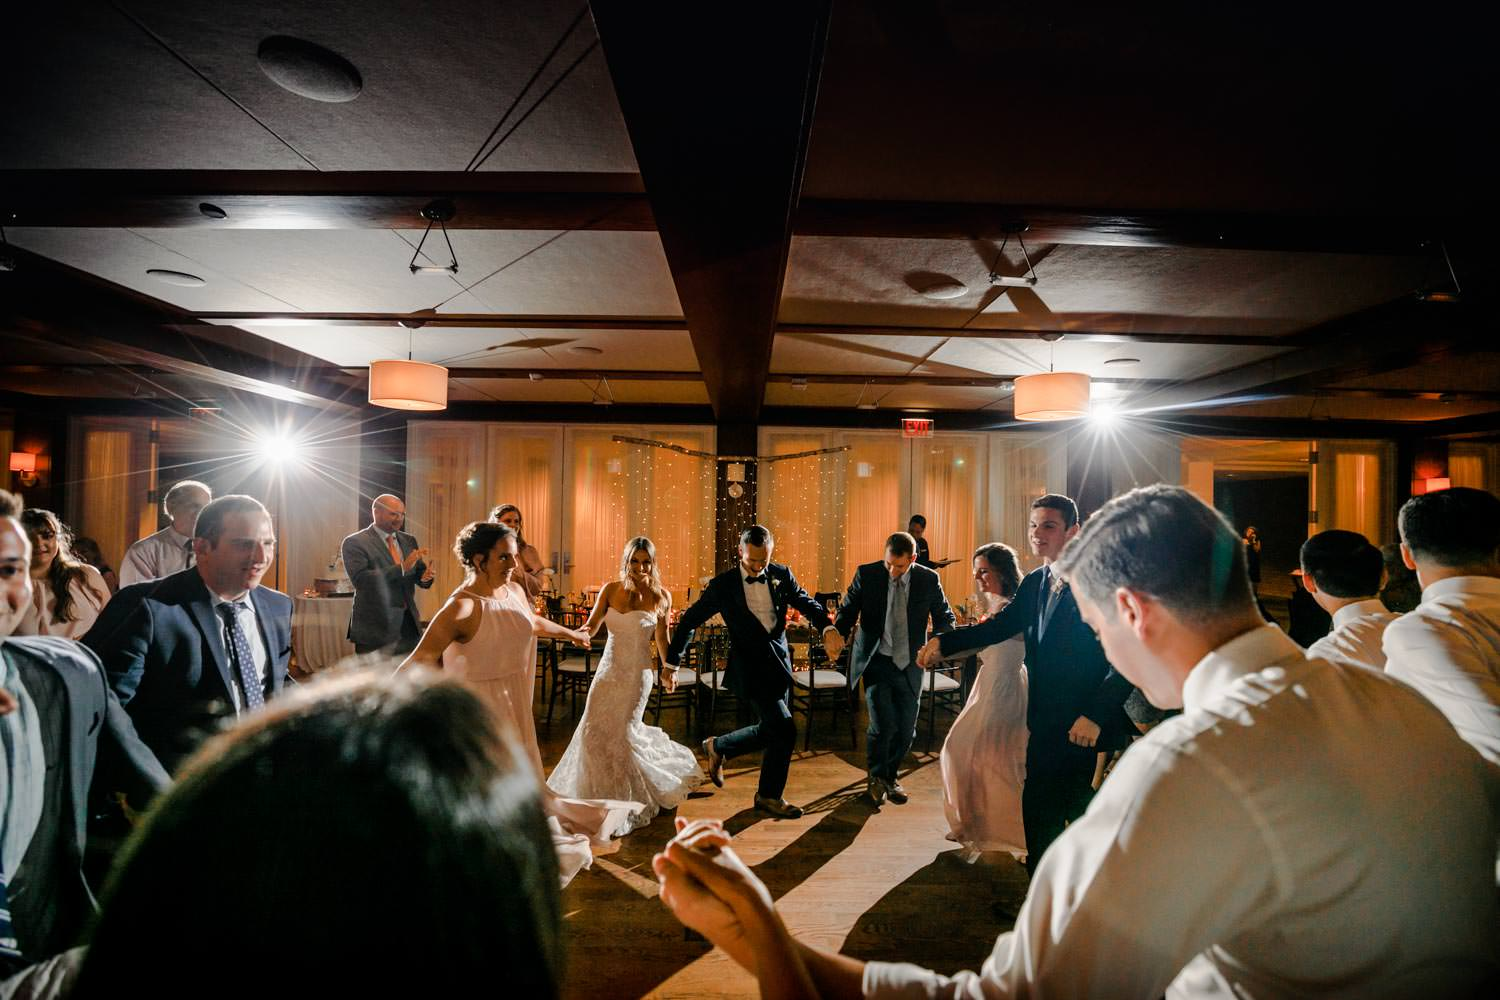 wedding couple dances the hora with guests at the woodstock inn